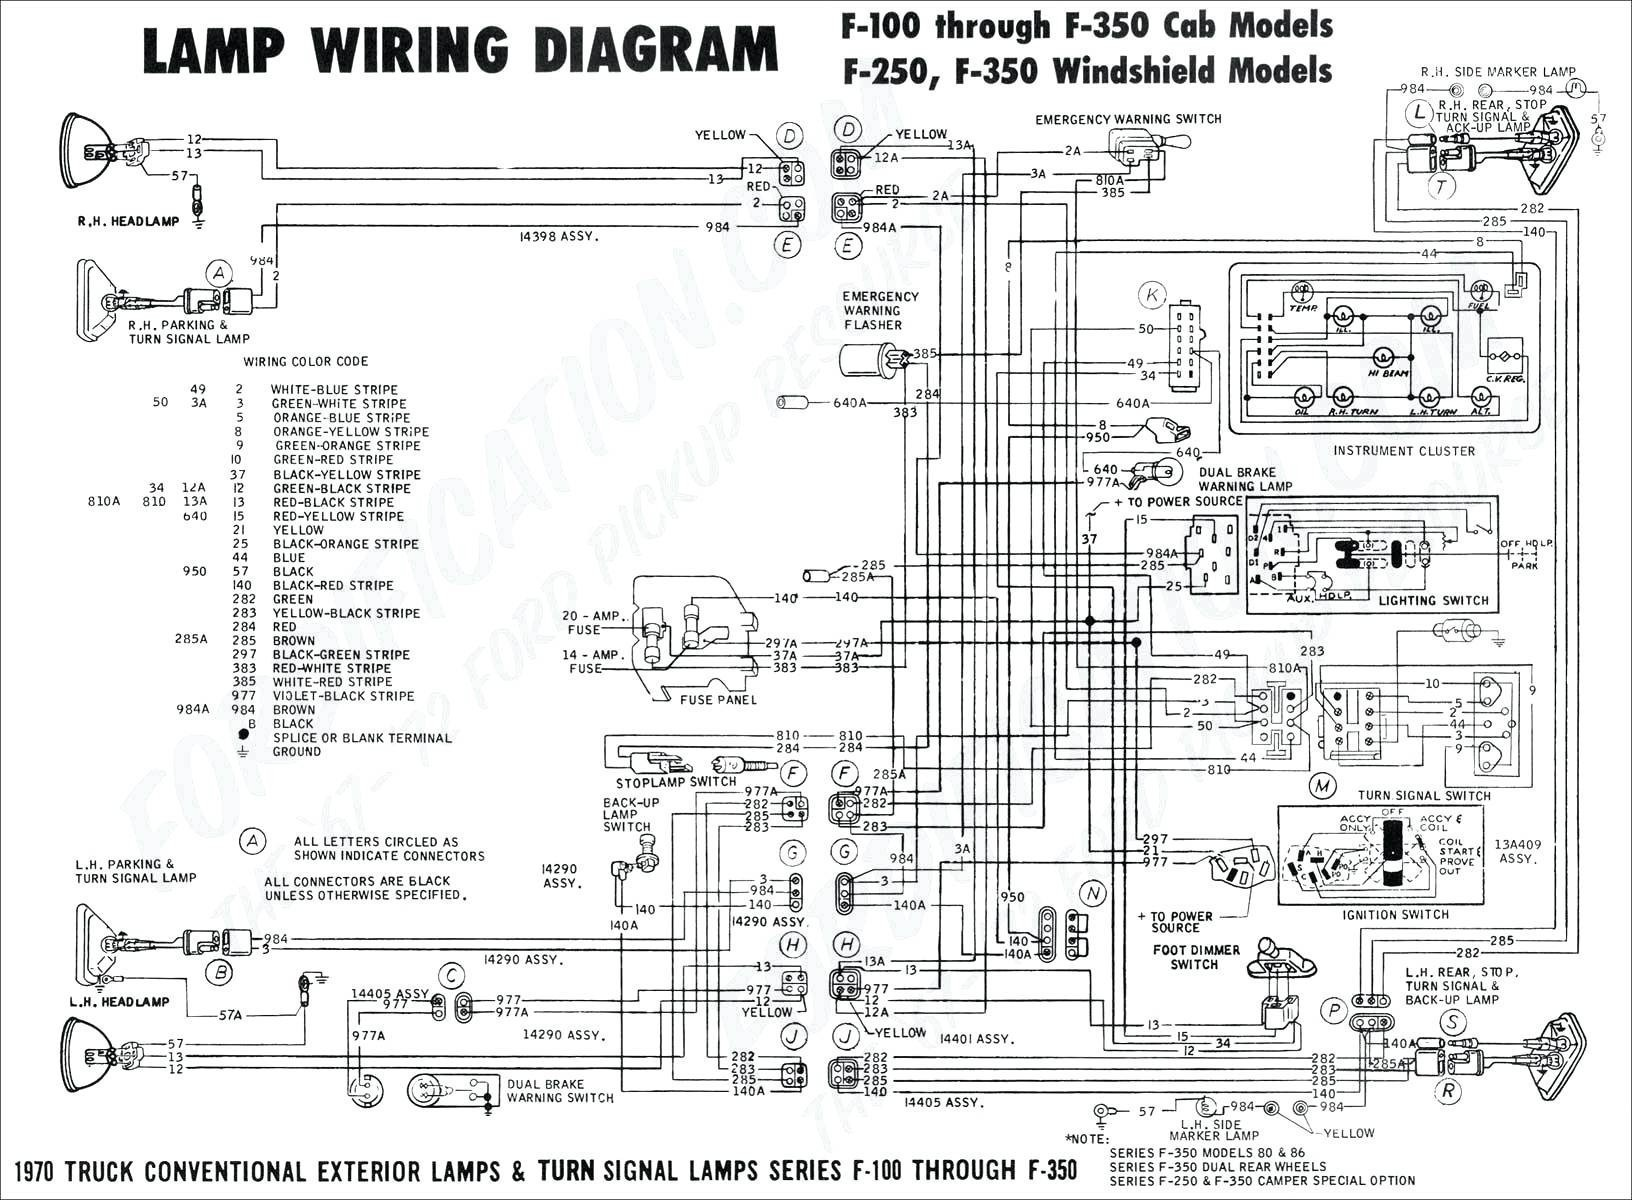 Wiring Diagram Conventions Reference Wiring Diagrams For Ford Fresh Ford Ranger Engine Diagram Wiring